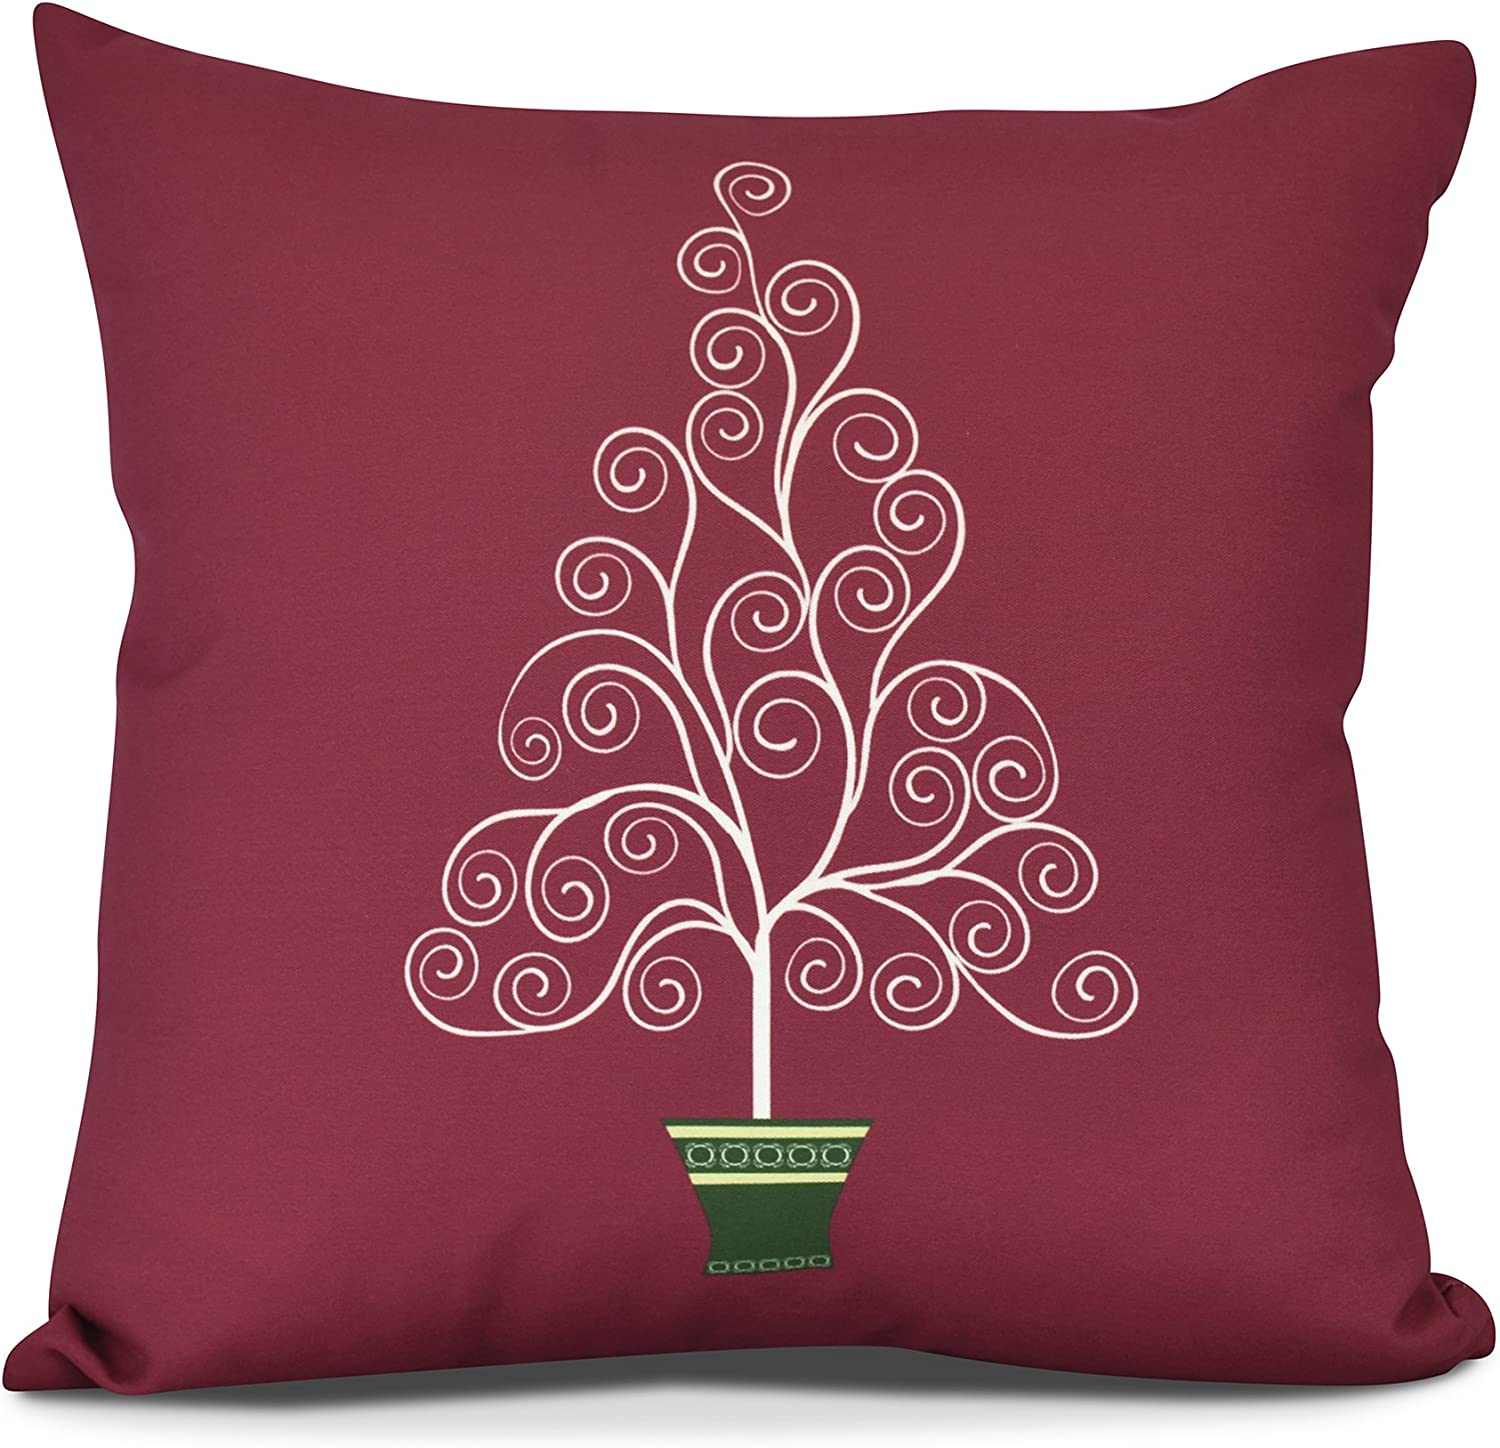 E by design Pillow, O5PHG961RE6-18, Red, 18